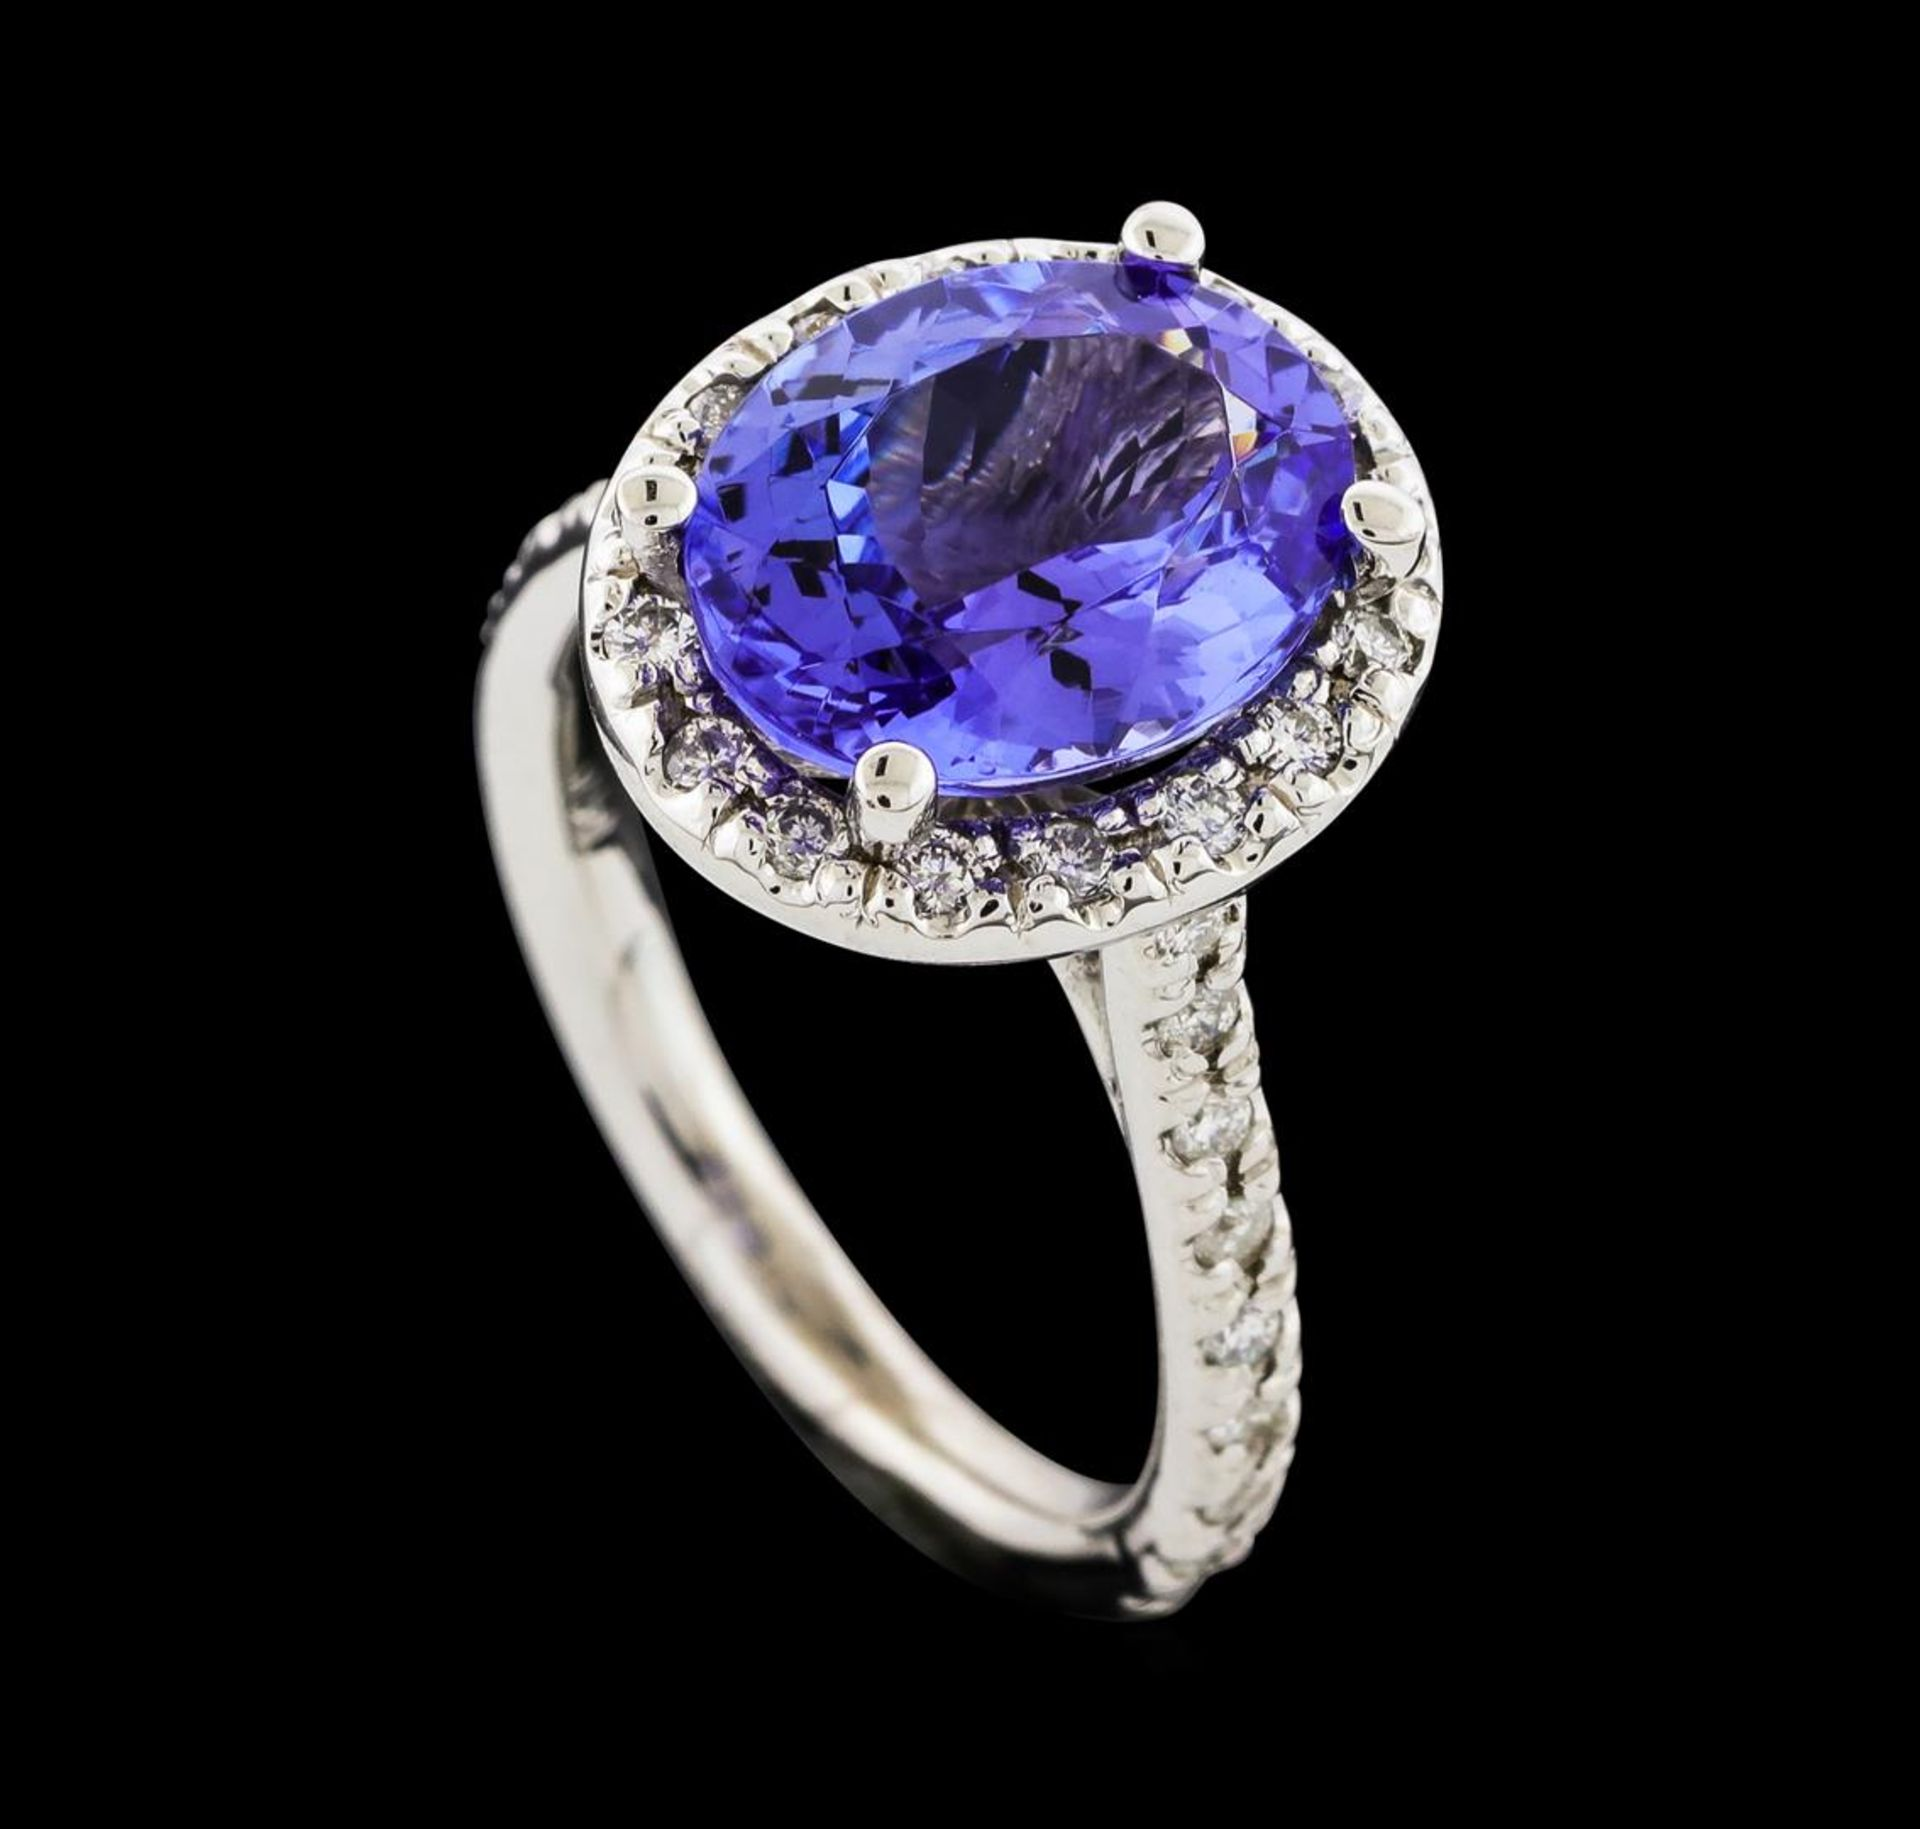 3.25 ctw Tanzanite and Diamond Ring - 14KT White Gold - Image 4 of 4